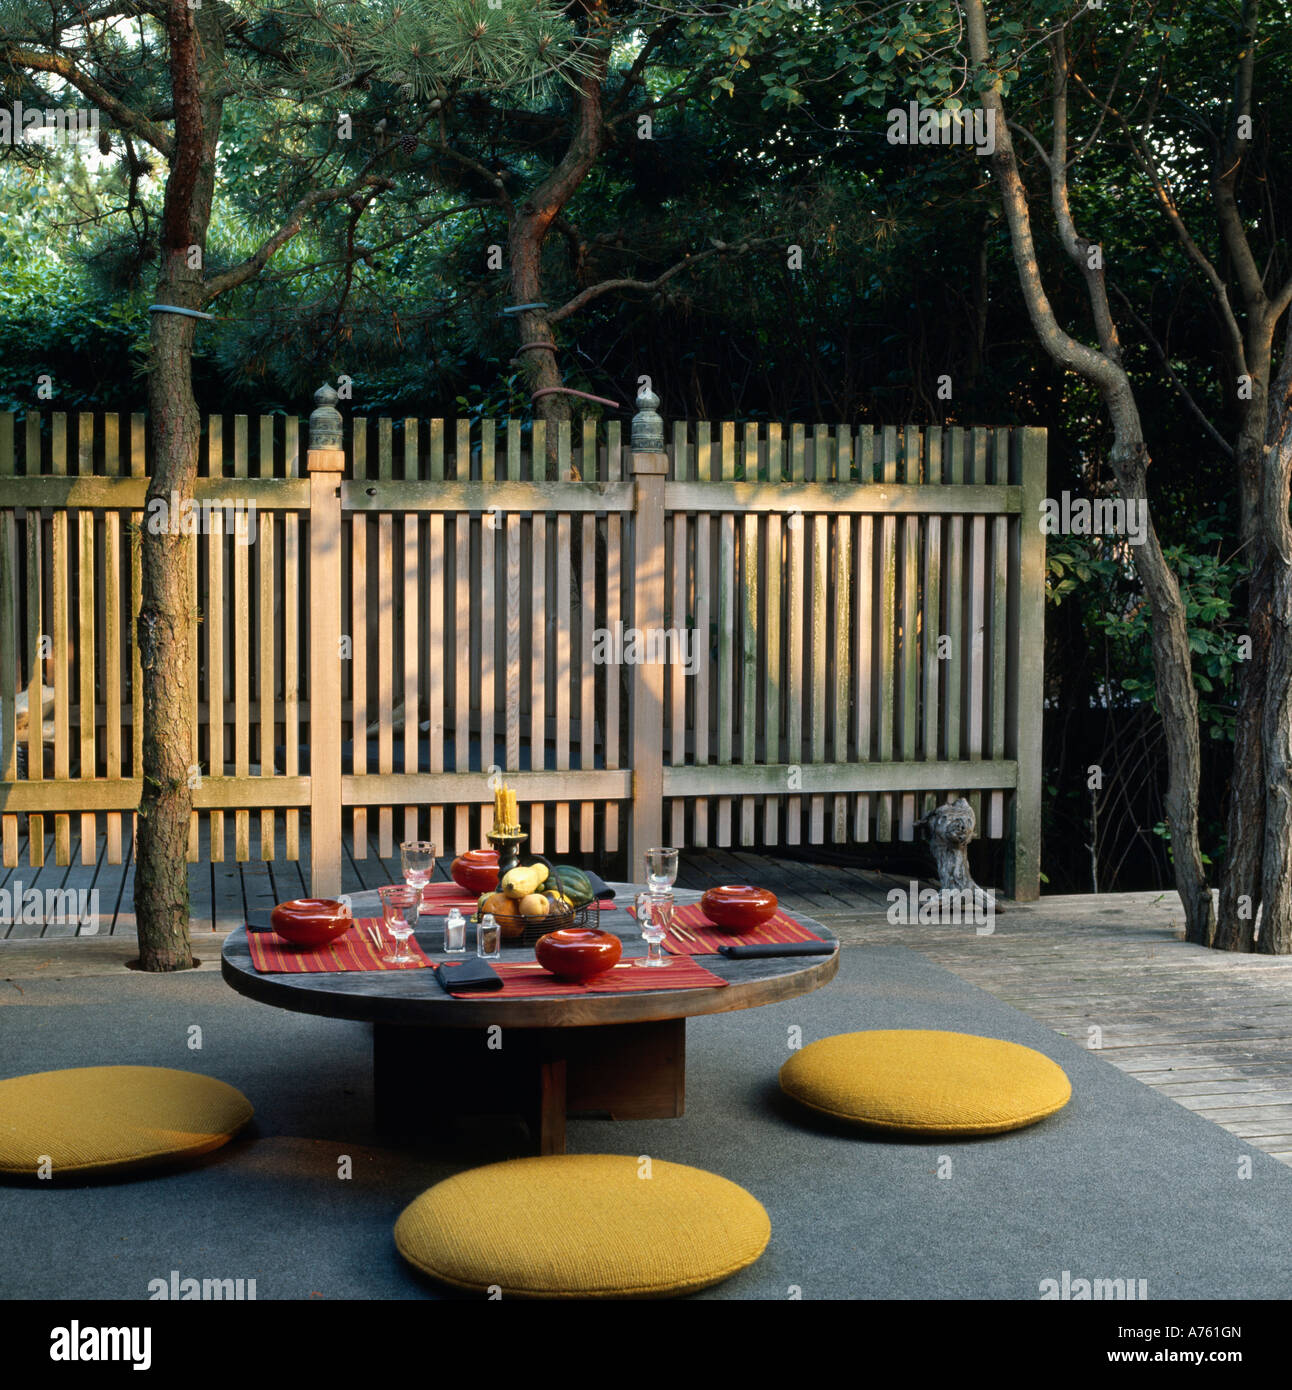 japanese patio furniture. Yellow Cushions Around Circular Table In Japanese Style Patio With Wooden Fenc Furniture E